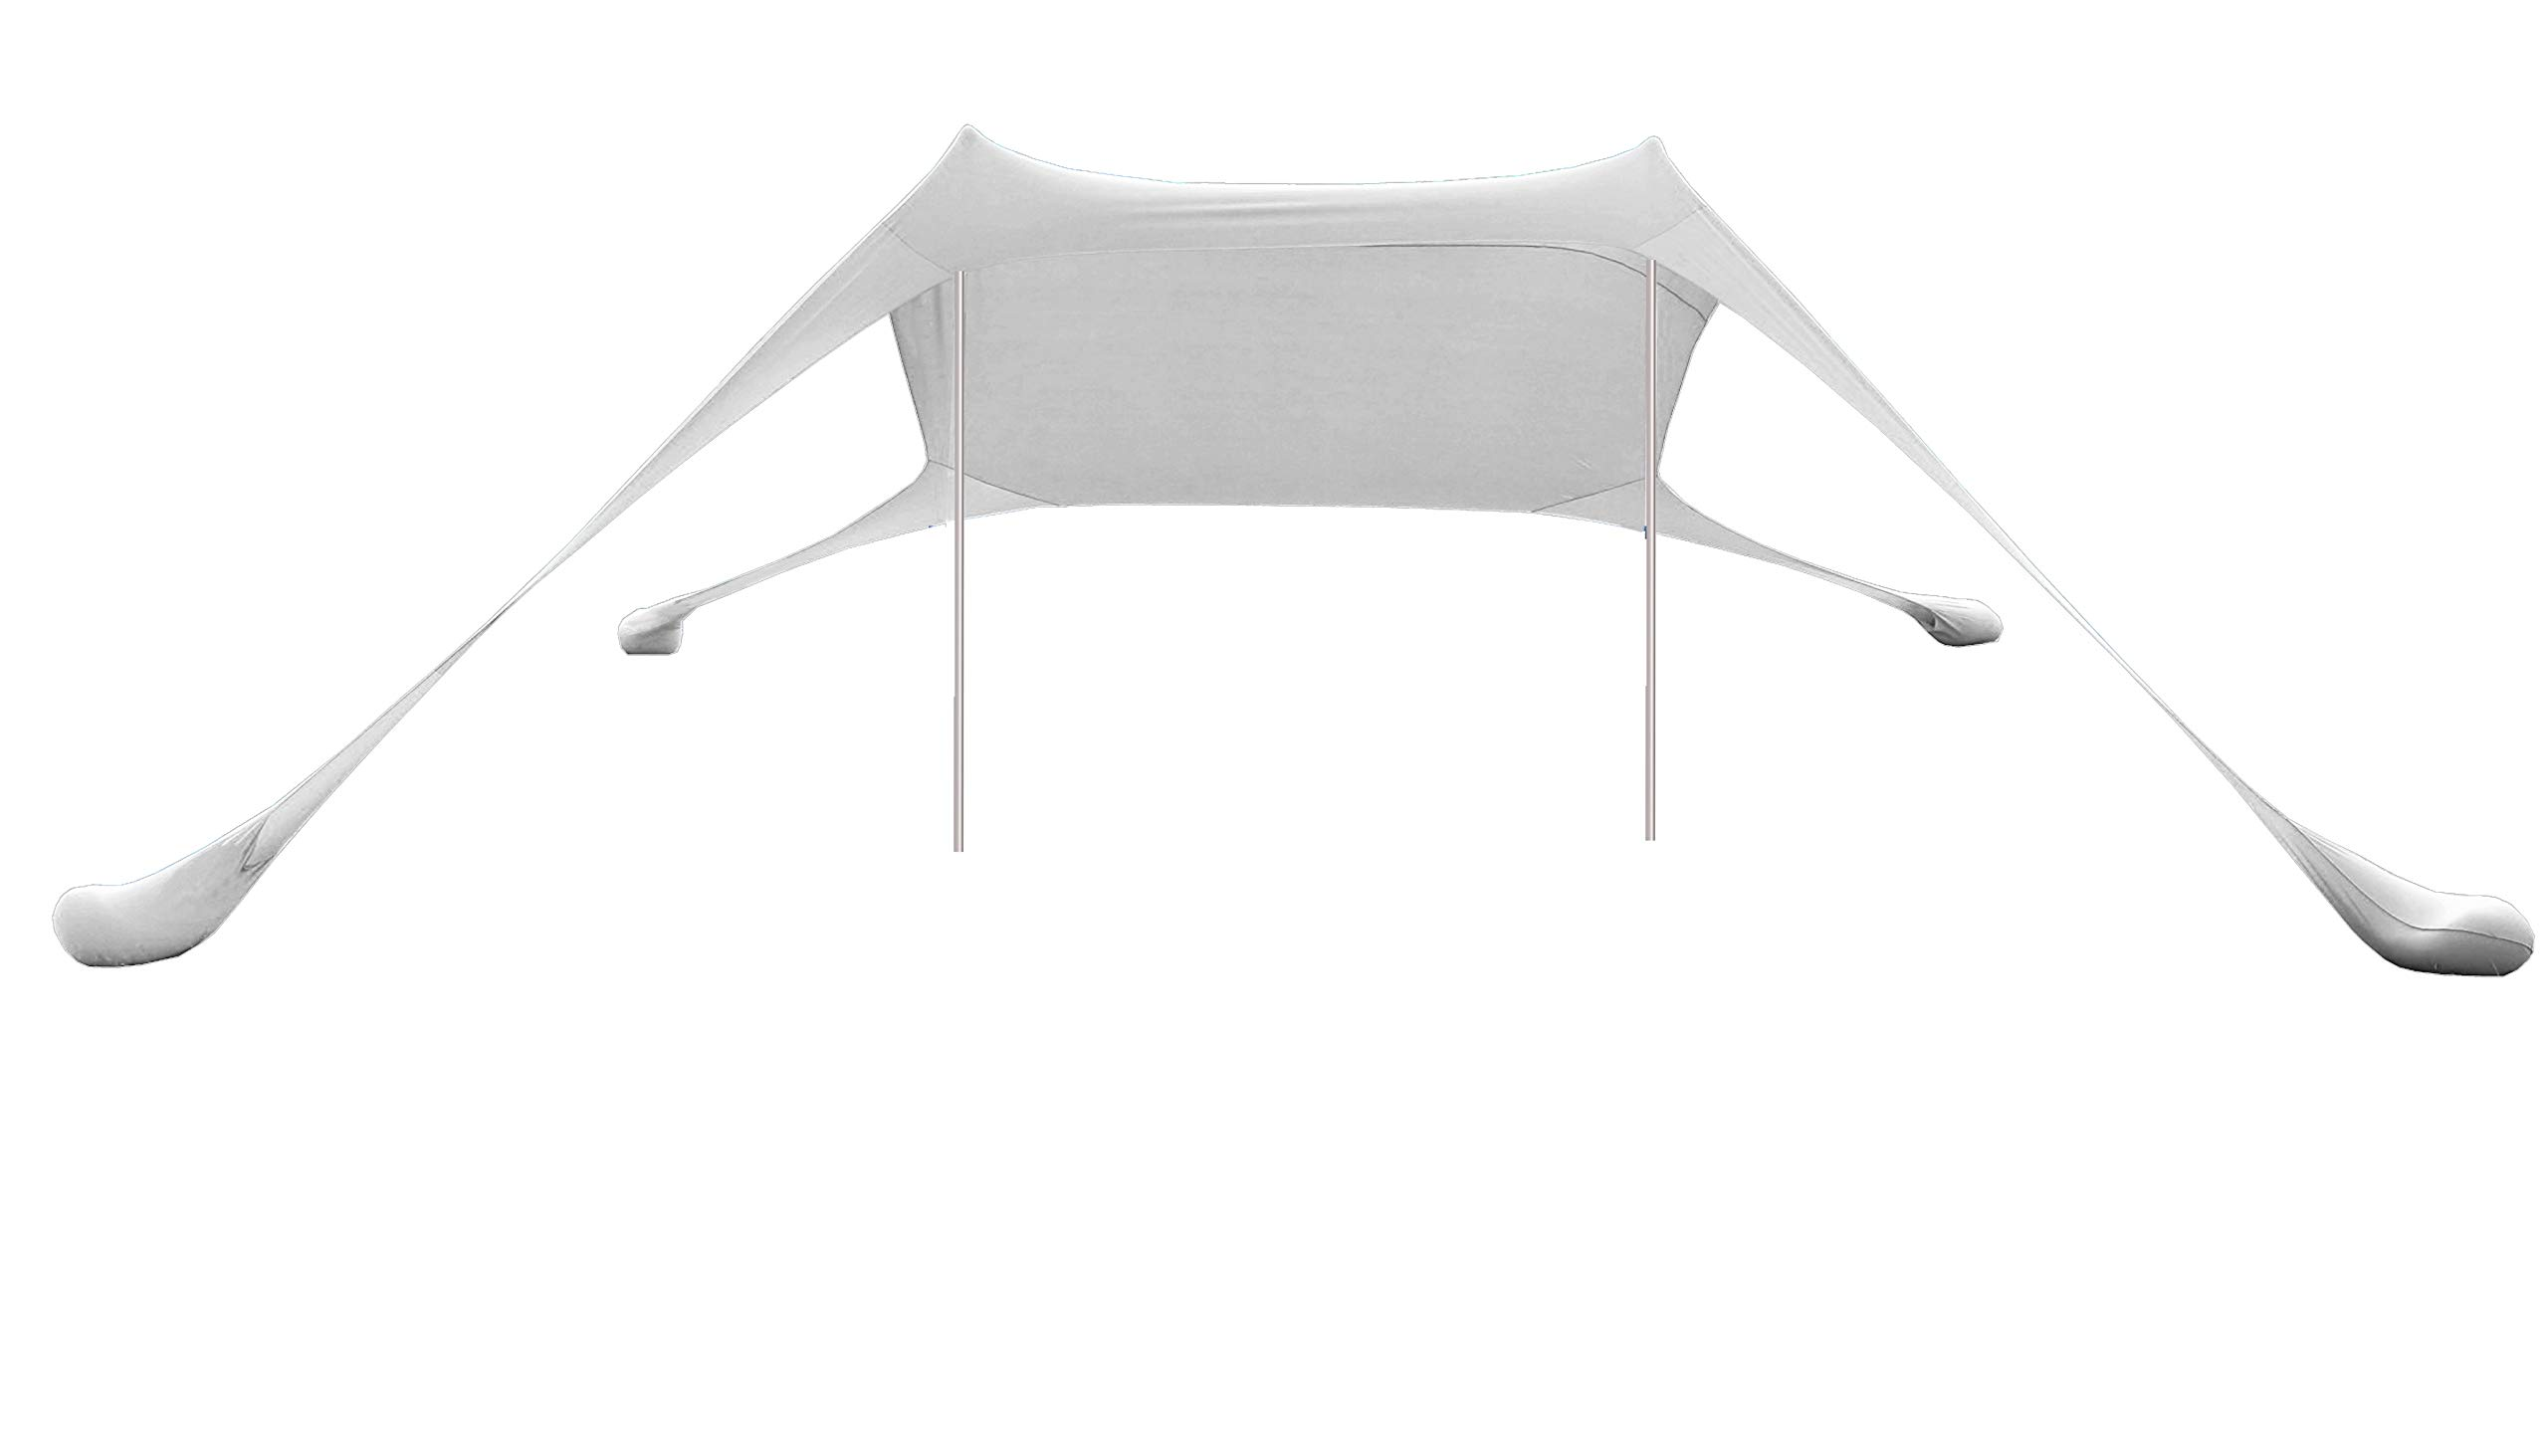 AMMSUN Beach Tent with sandbag Anchors, Portable Canopy Sun Shelter,7 X 7ft -Lightweight, 100% Lycra SunShelter with UV Protection. Sunshade for Family at The Beach, Parks, Camping & Outdoors/White by AMMSUN